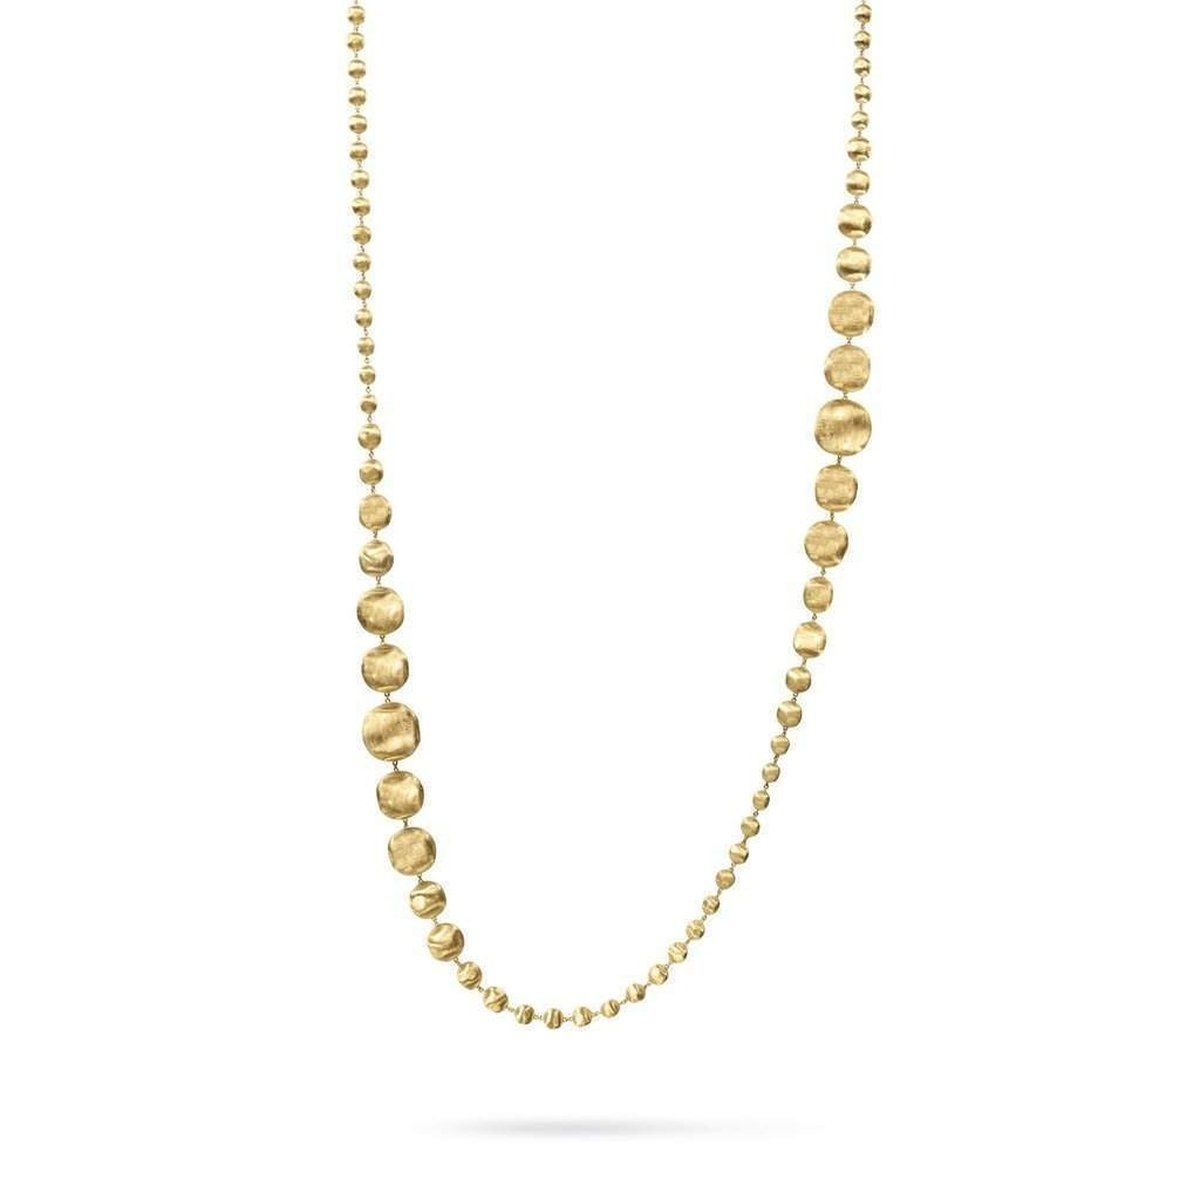 Marco Bicego 18k Africa Long Necklace, 40